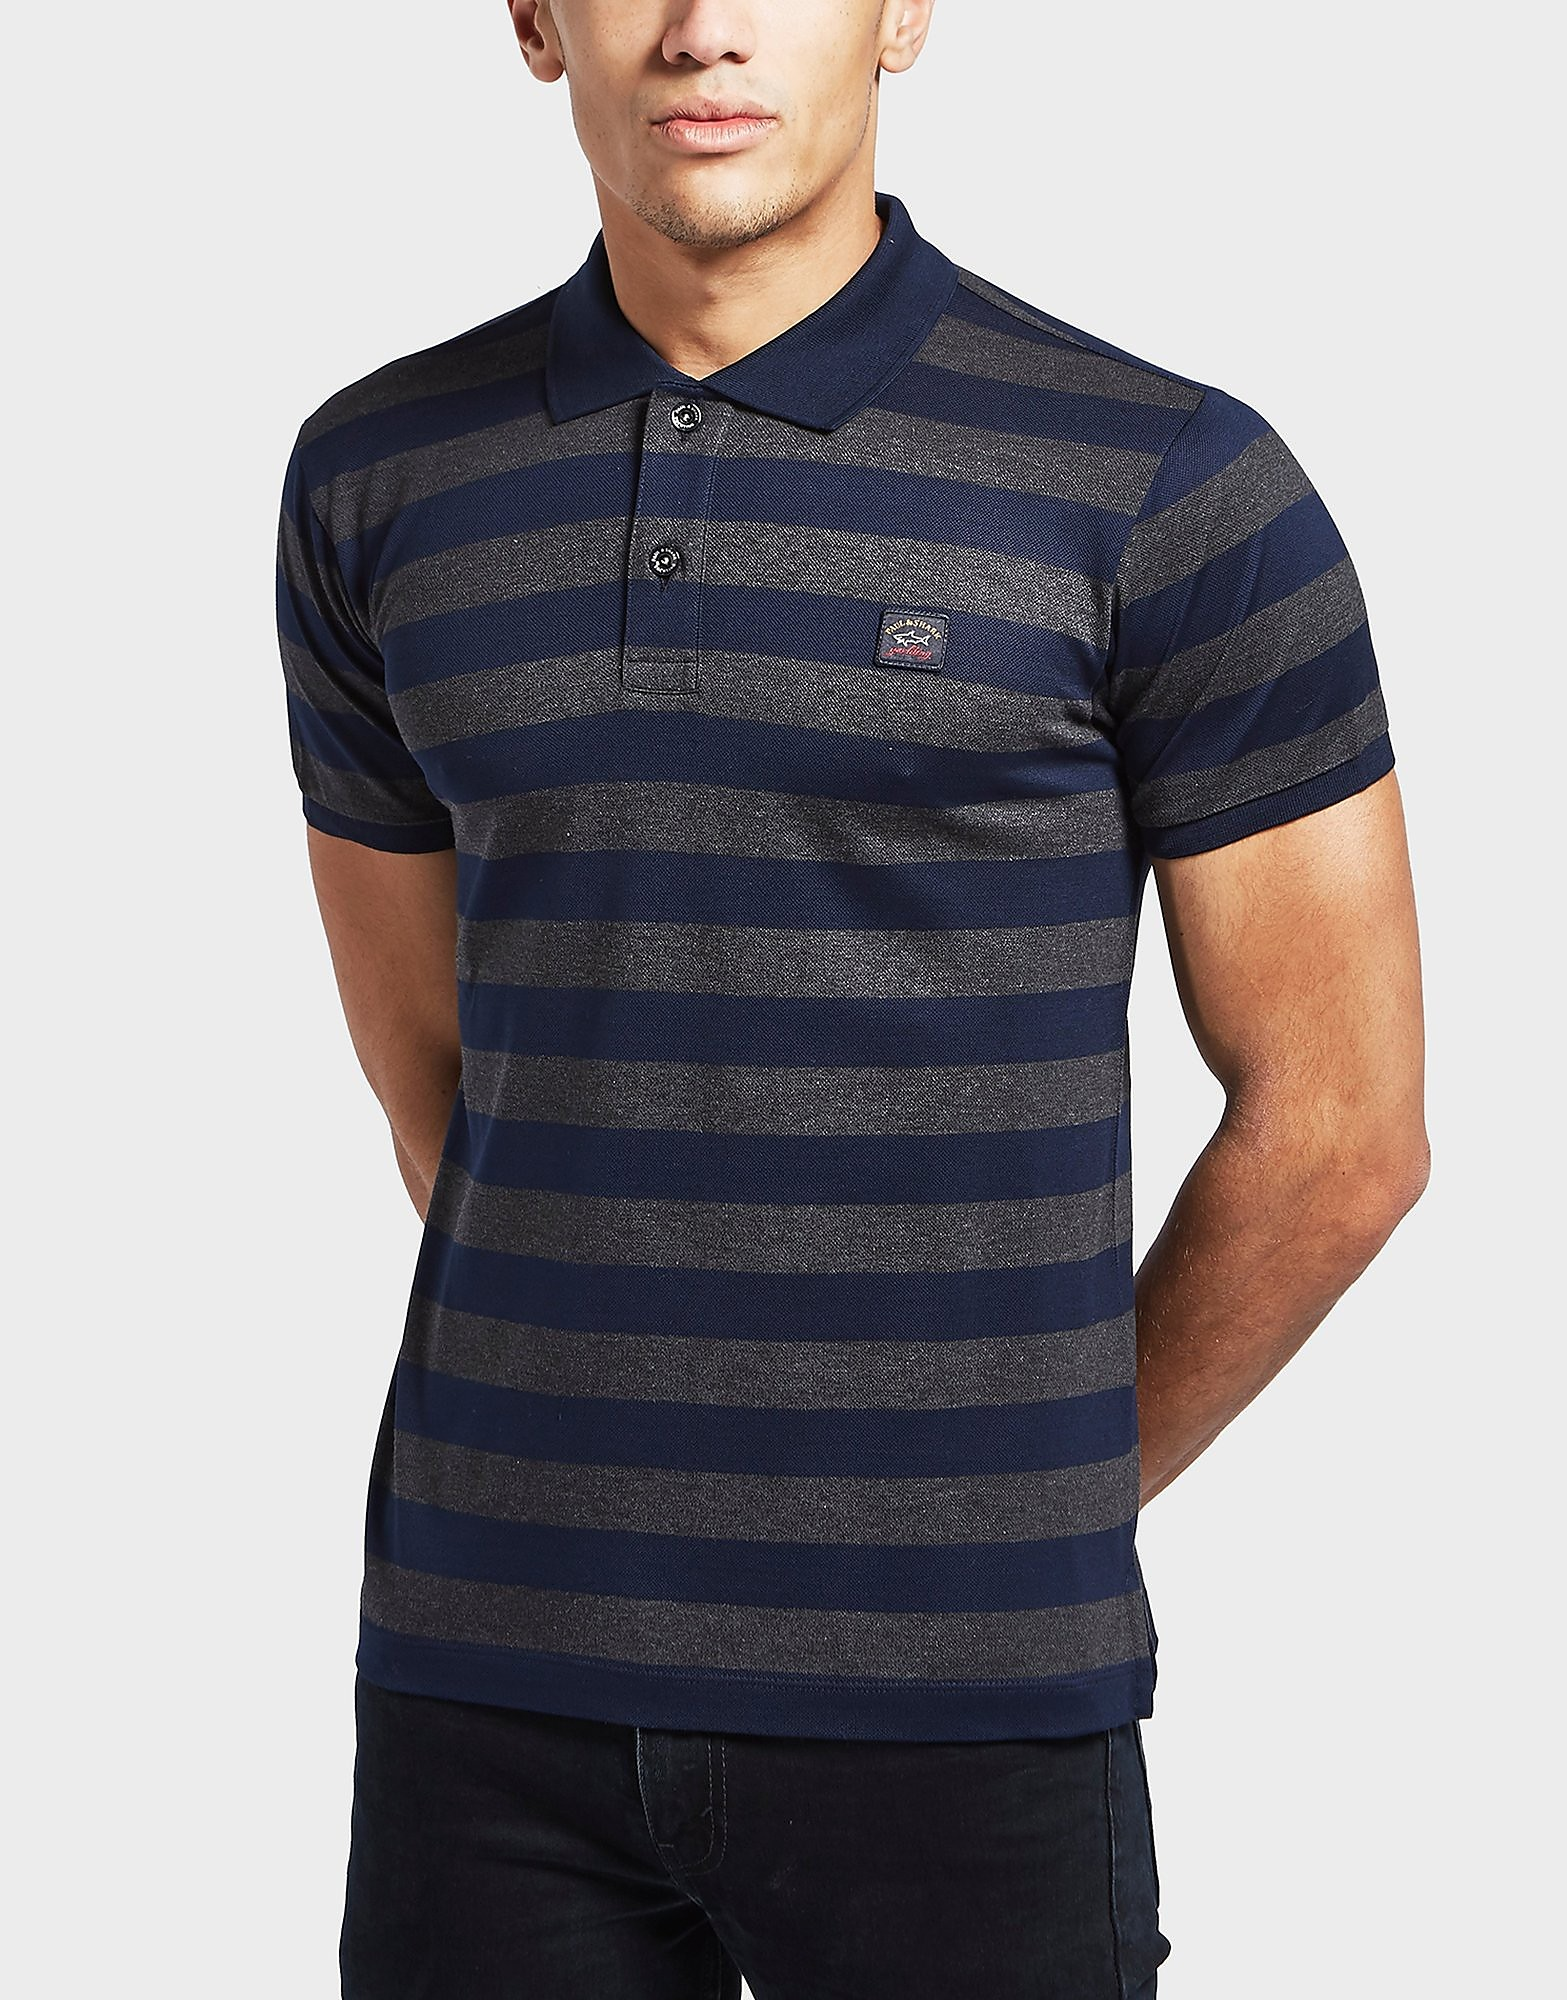 Paul and Shark Pique Striped Short Sleeve Polo Shirt